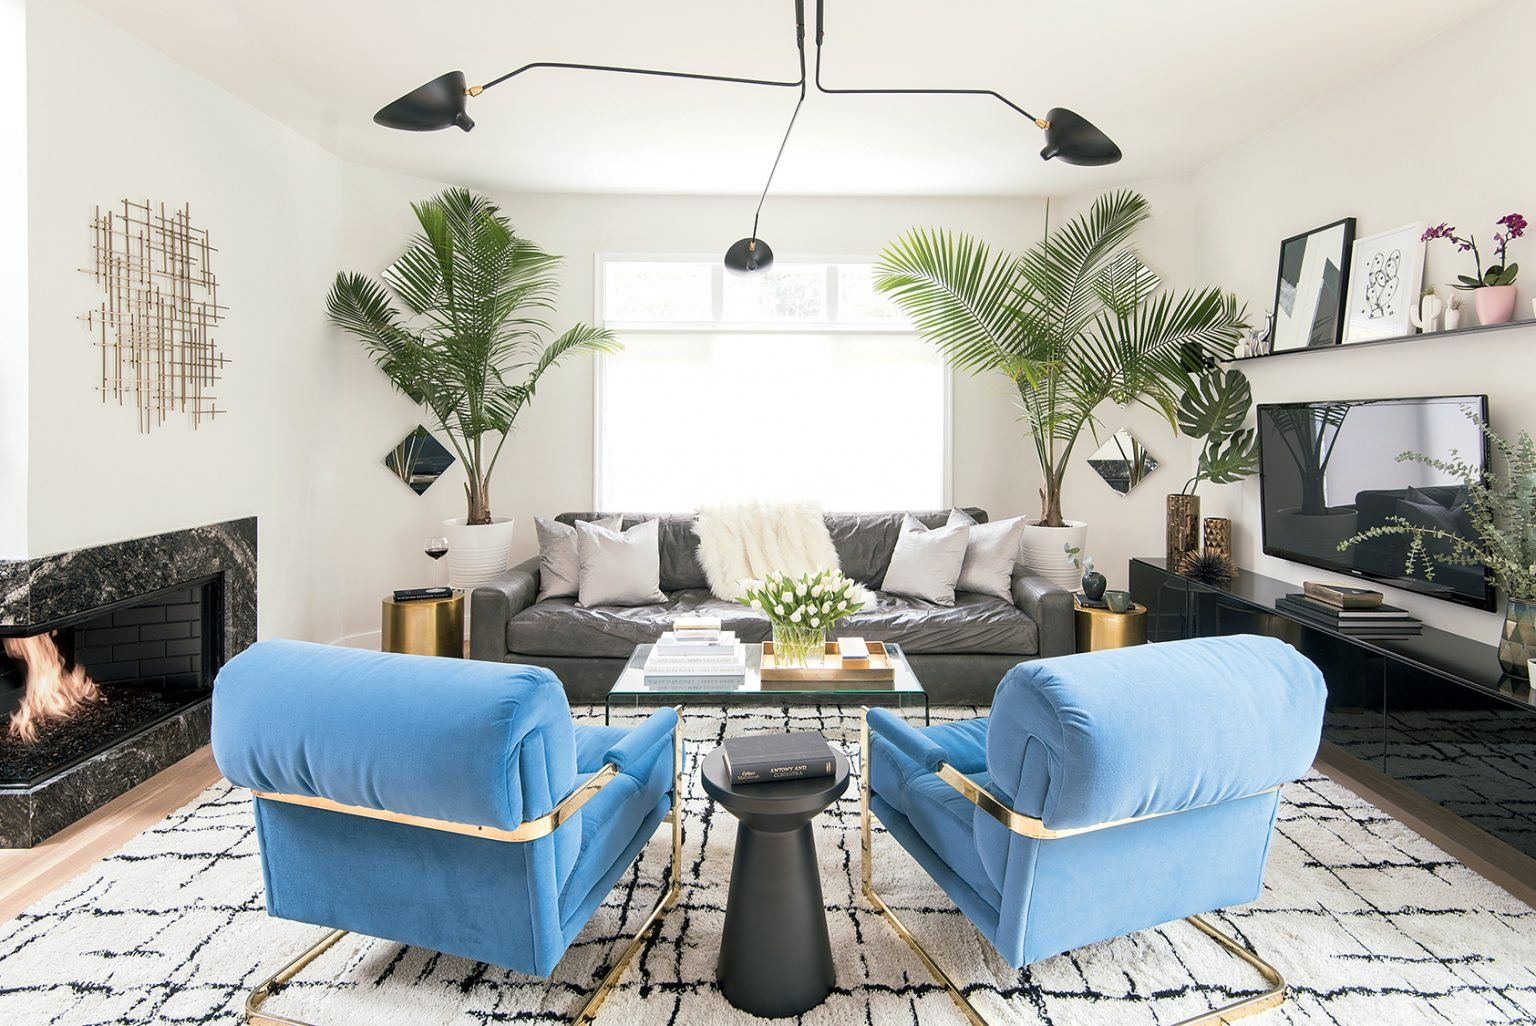 A Millennial Couple On A Budget Used Ebay And Craigslist To Create Their Dream House Restoration Hardware Sofa Apartment Inspiration Dream House